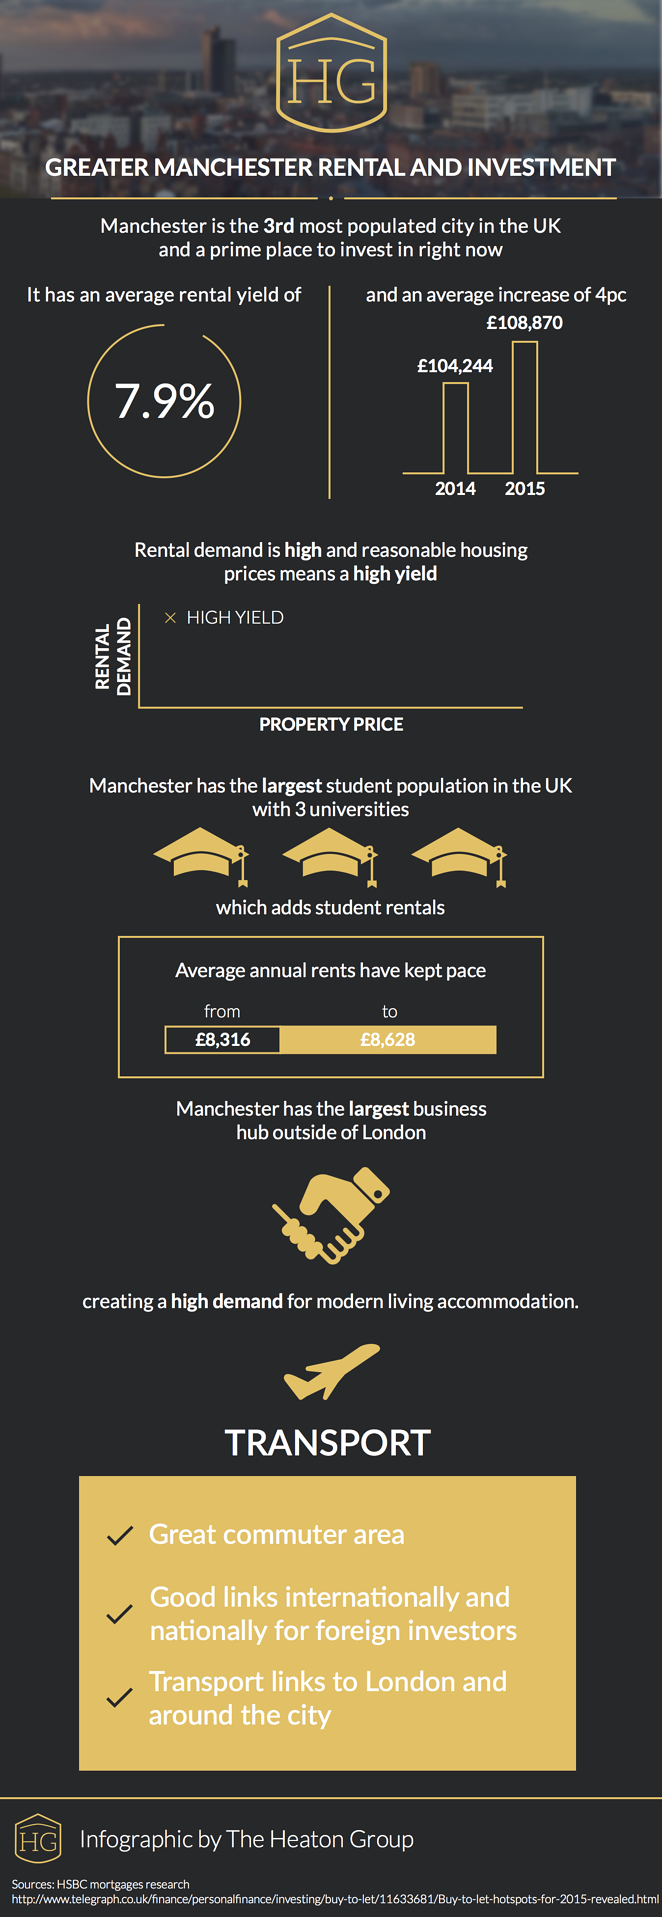 [Infographic] Manchester Rental Demand